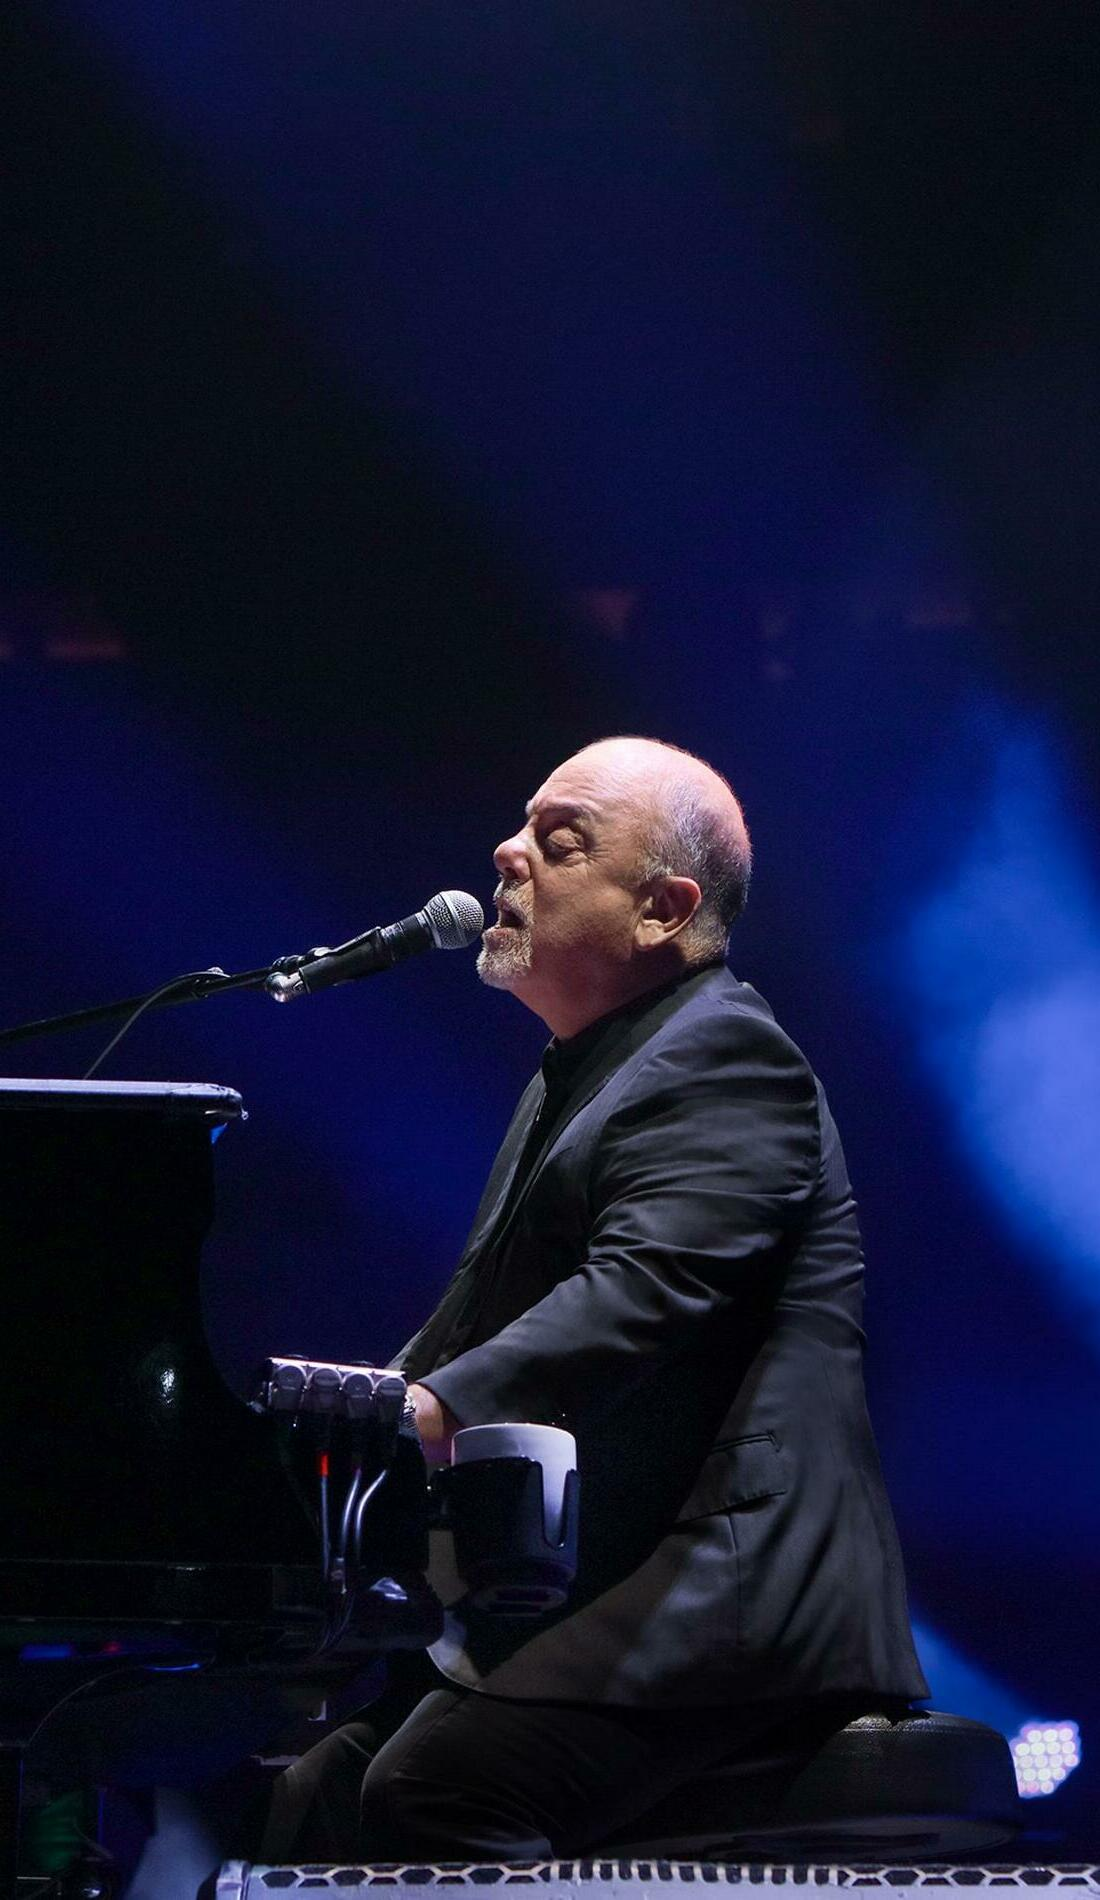 A Billy Joel live event